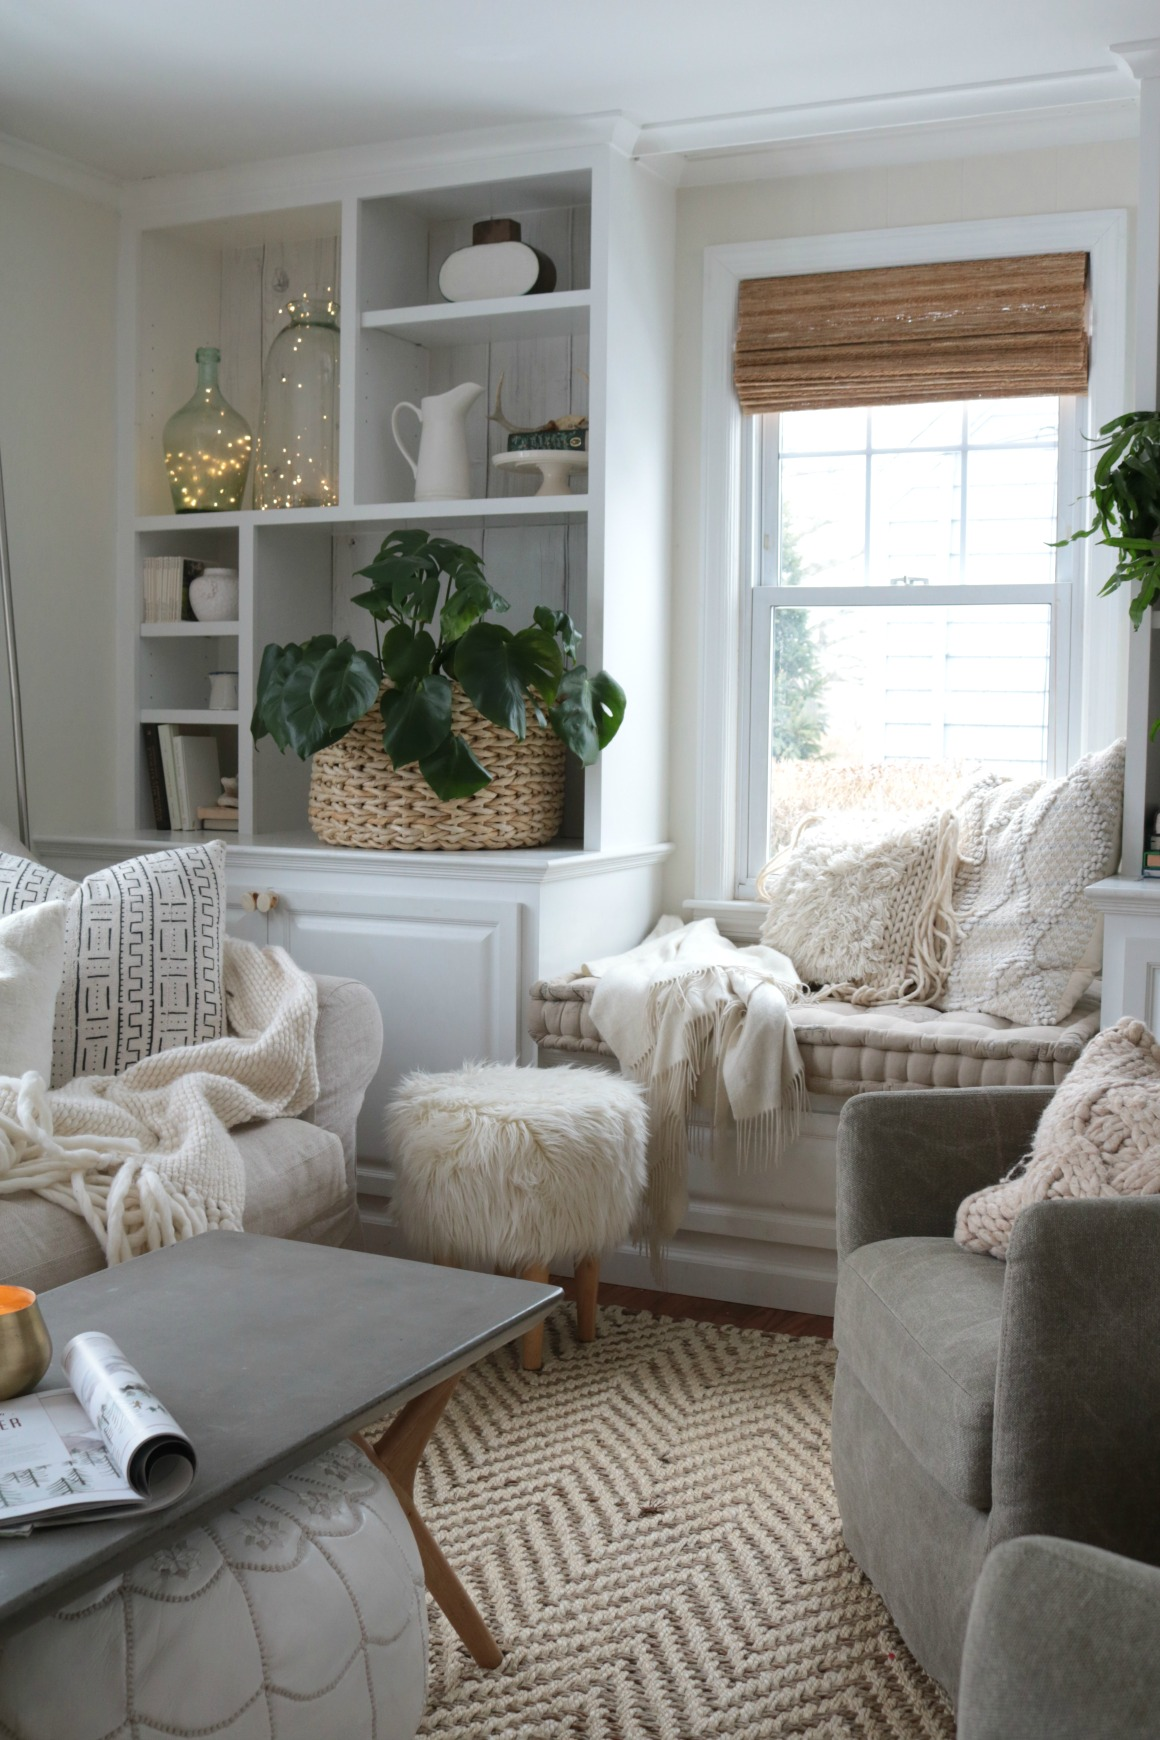 How To Have A Cozy Home 4 Simple Tips Nesting With Grace